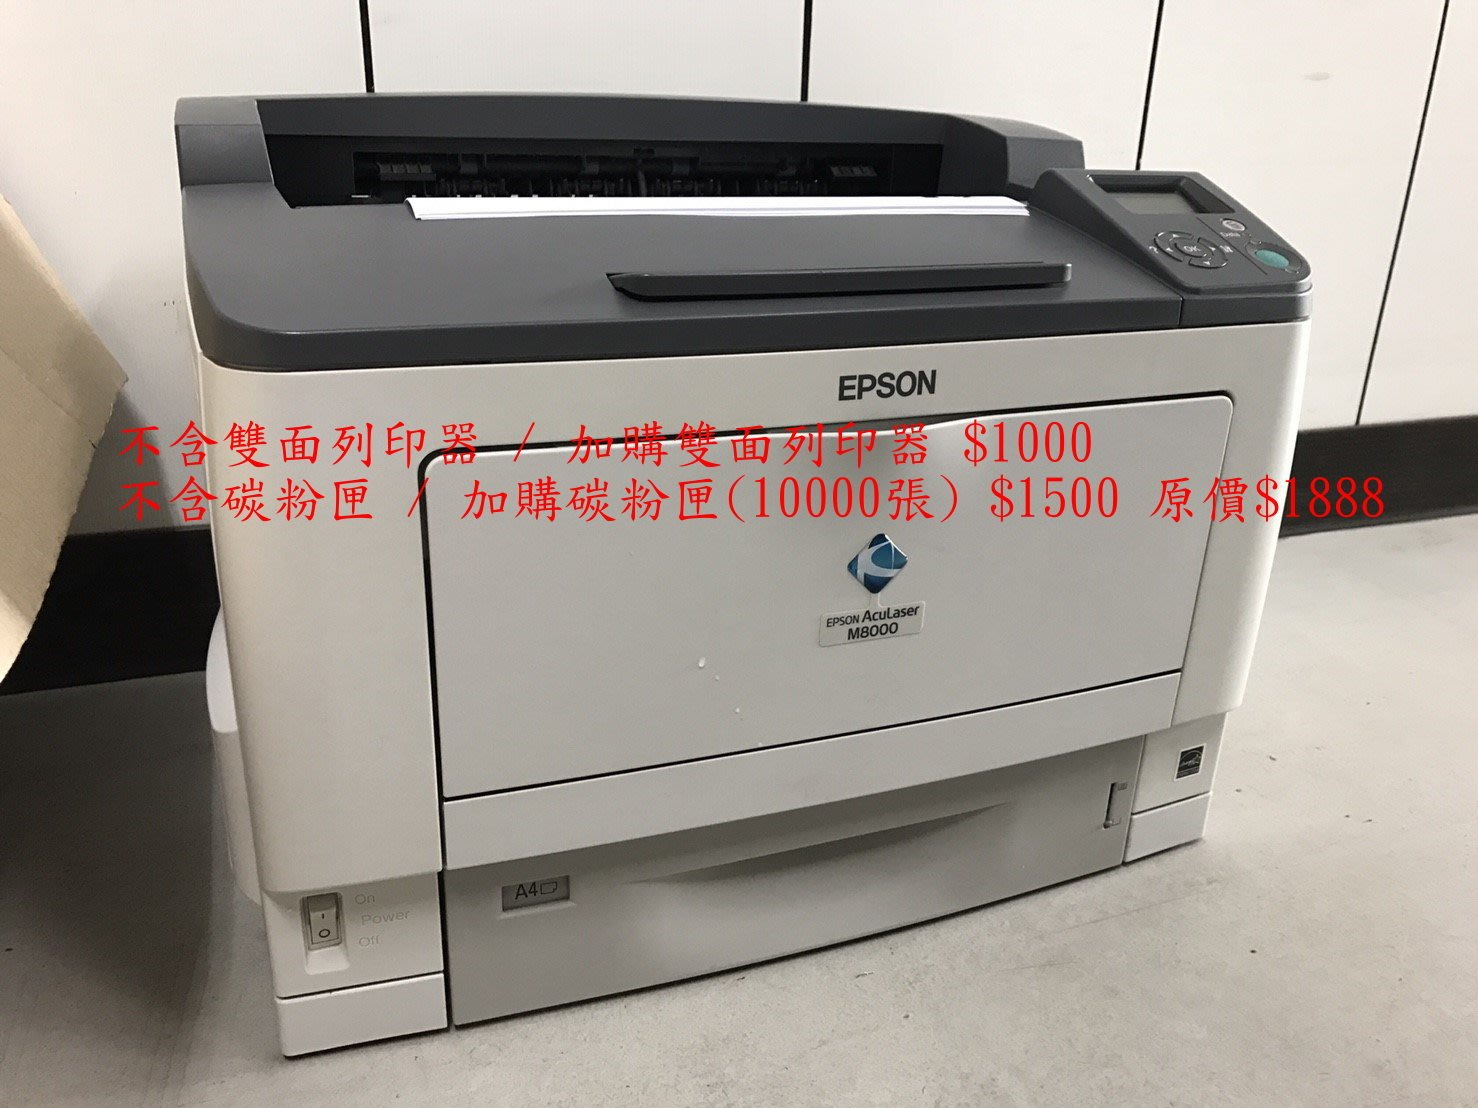 EPSON M8000 DRIVER FOR WINDOWS